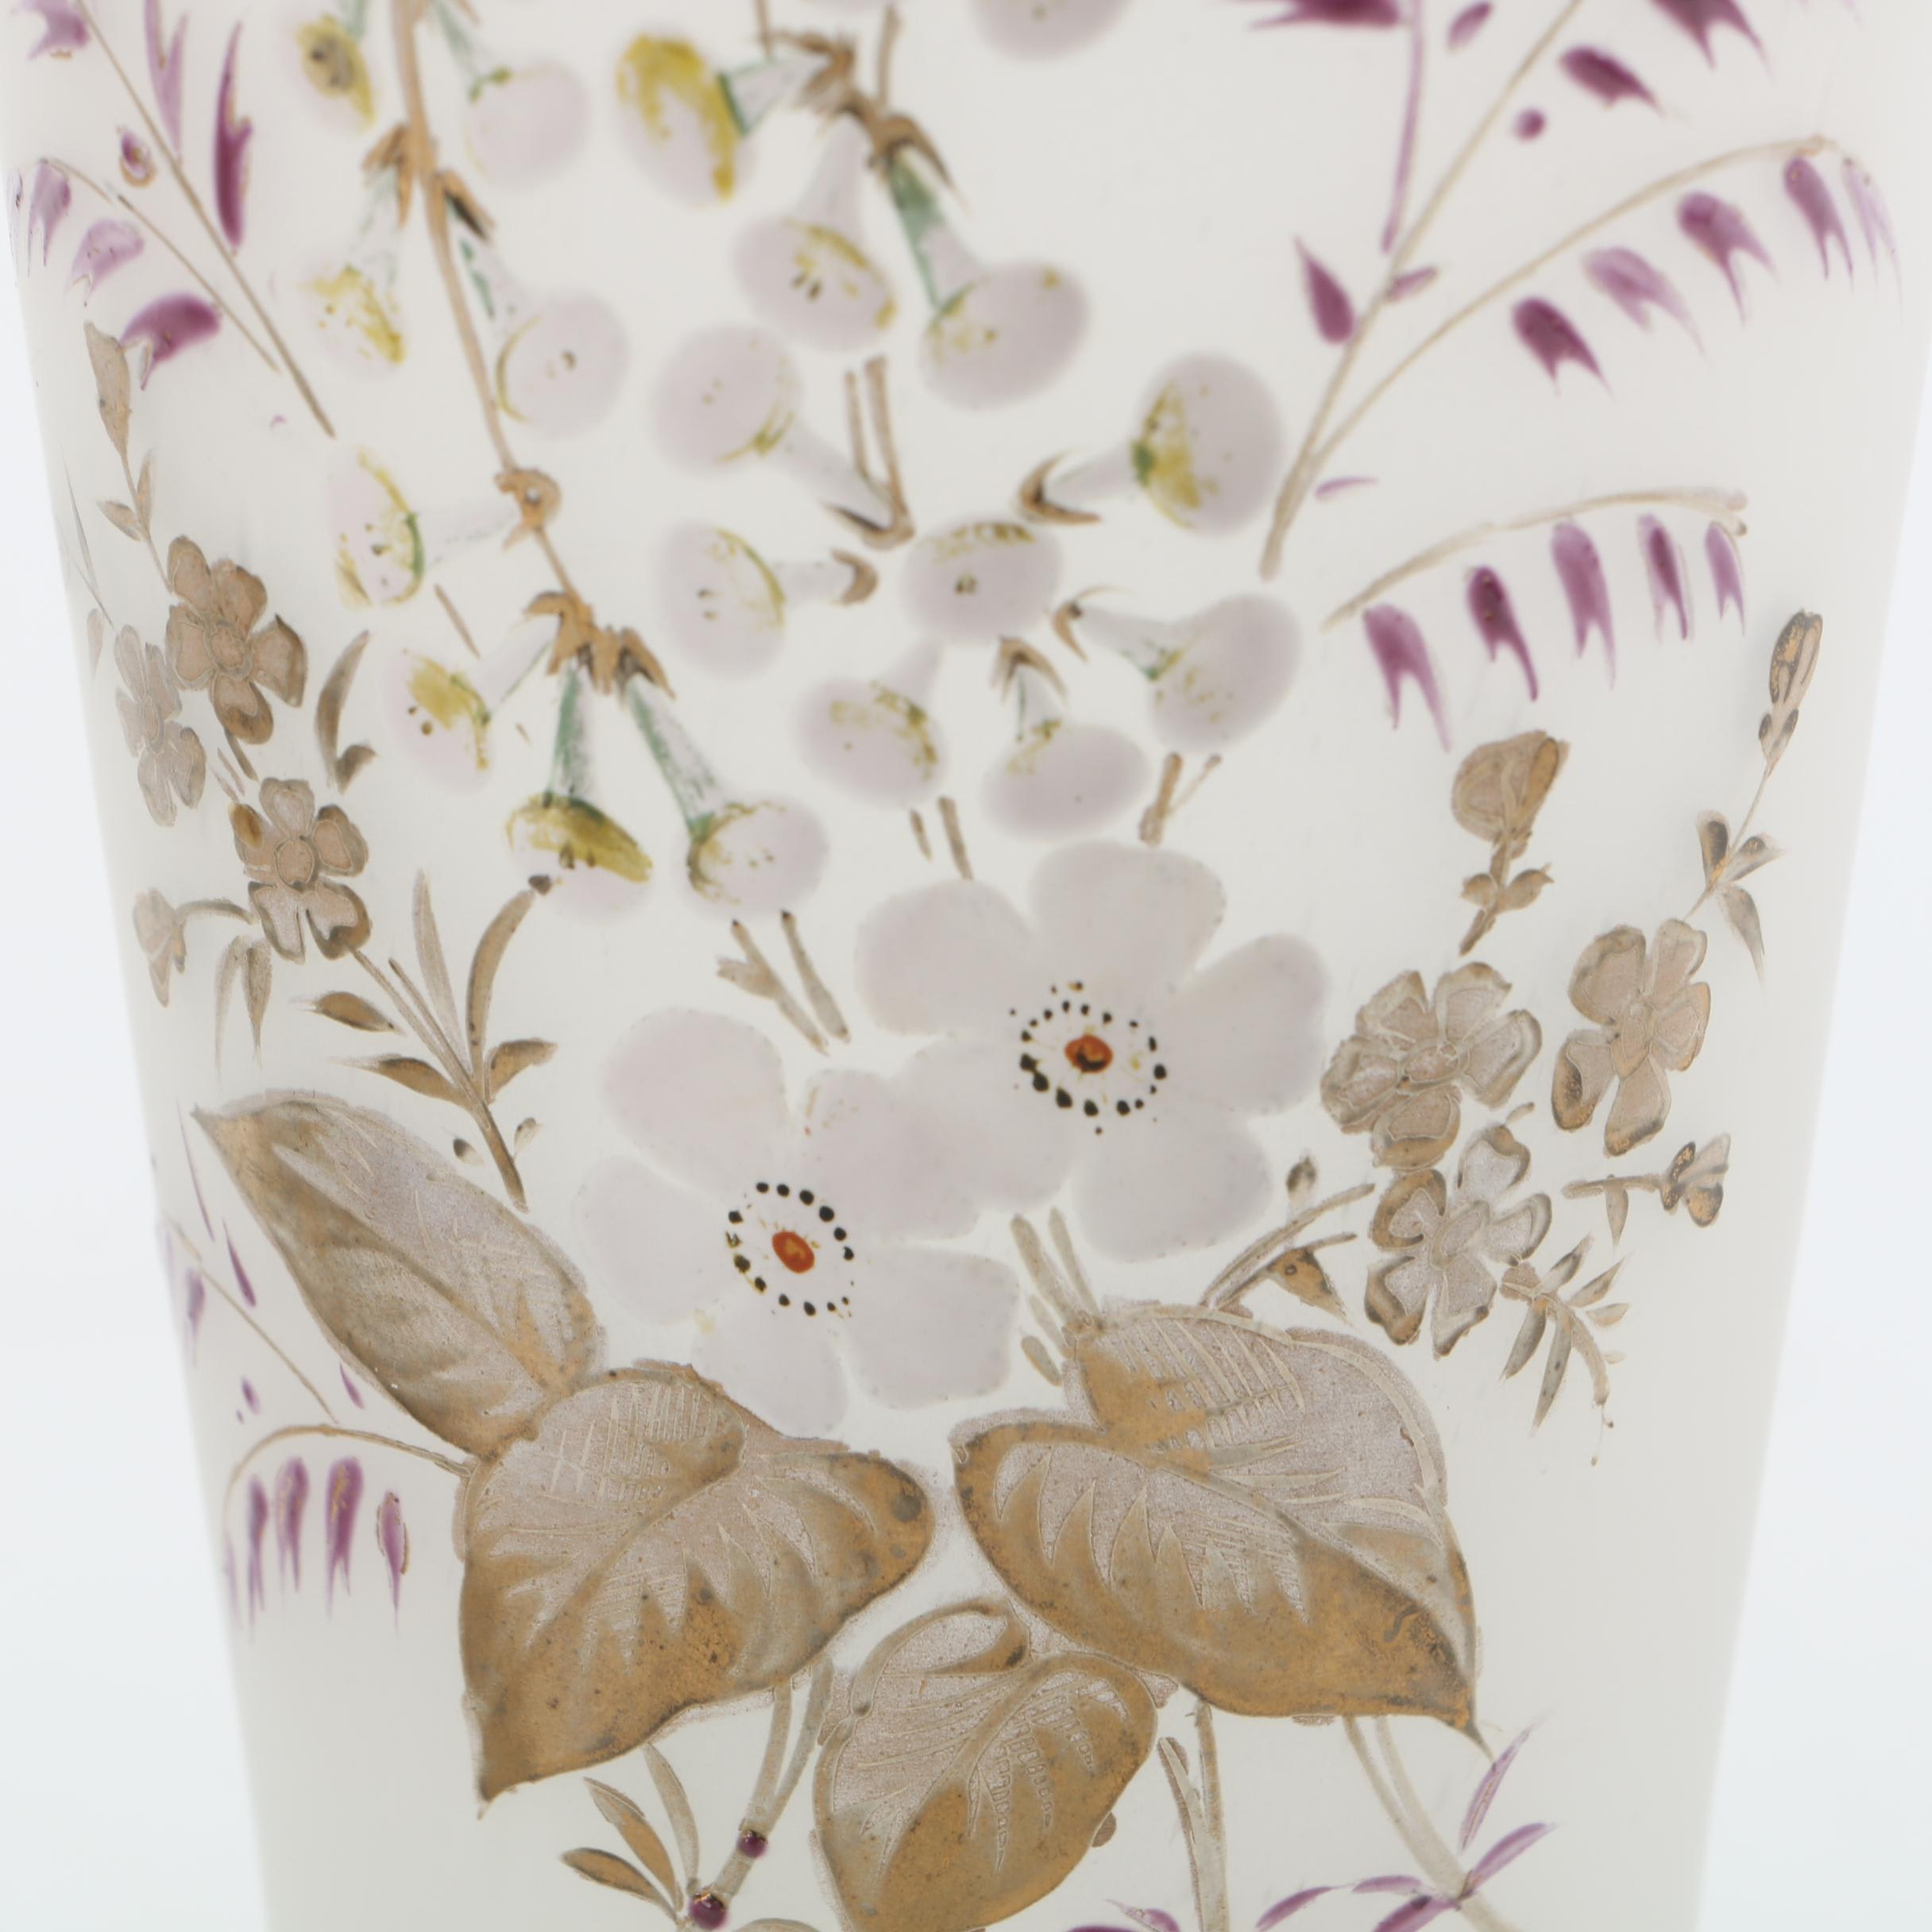 Antique Bristol Frosted Glass Hand Painted Vases